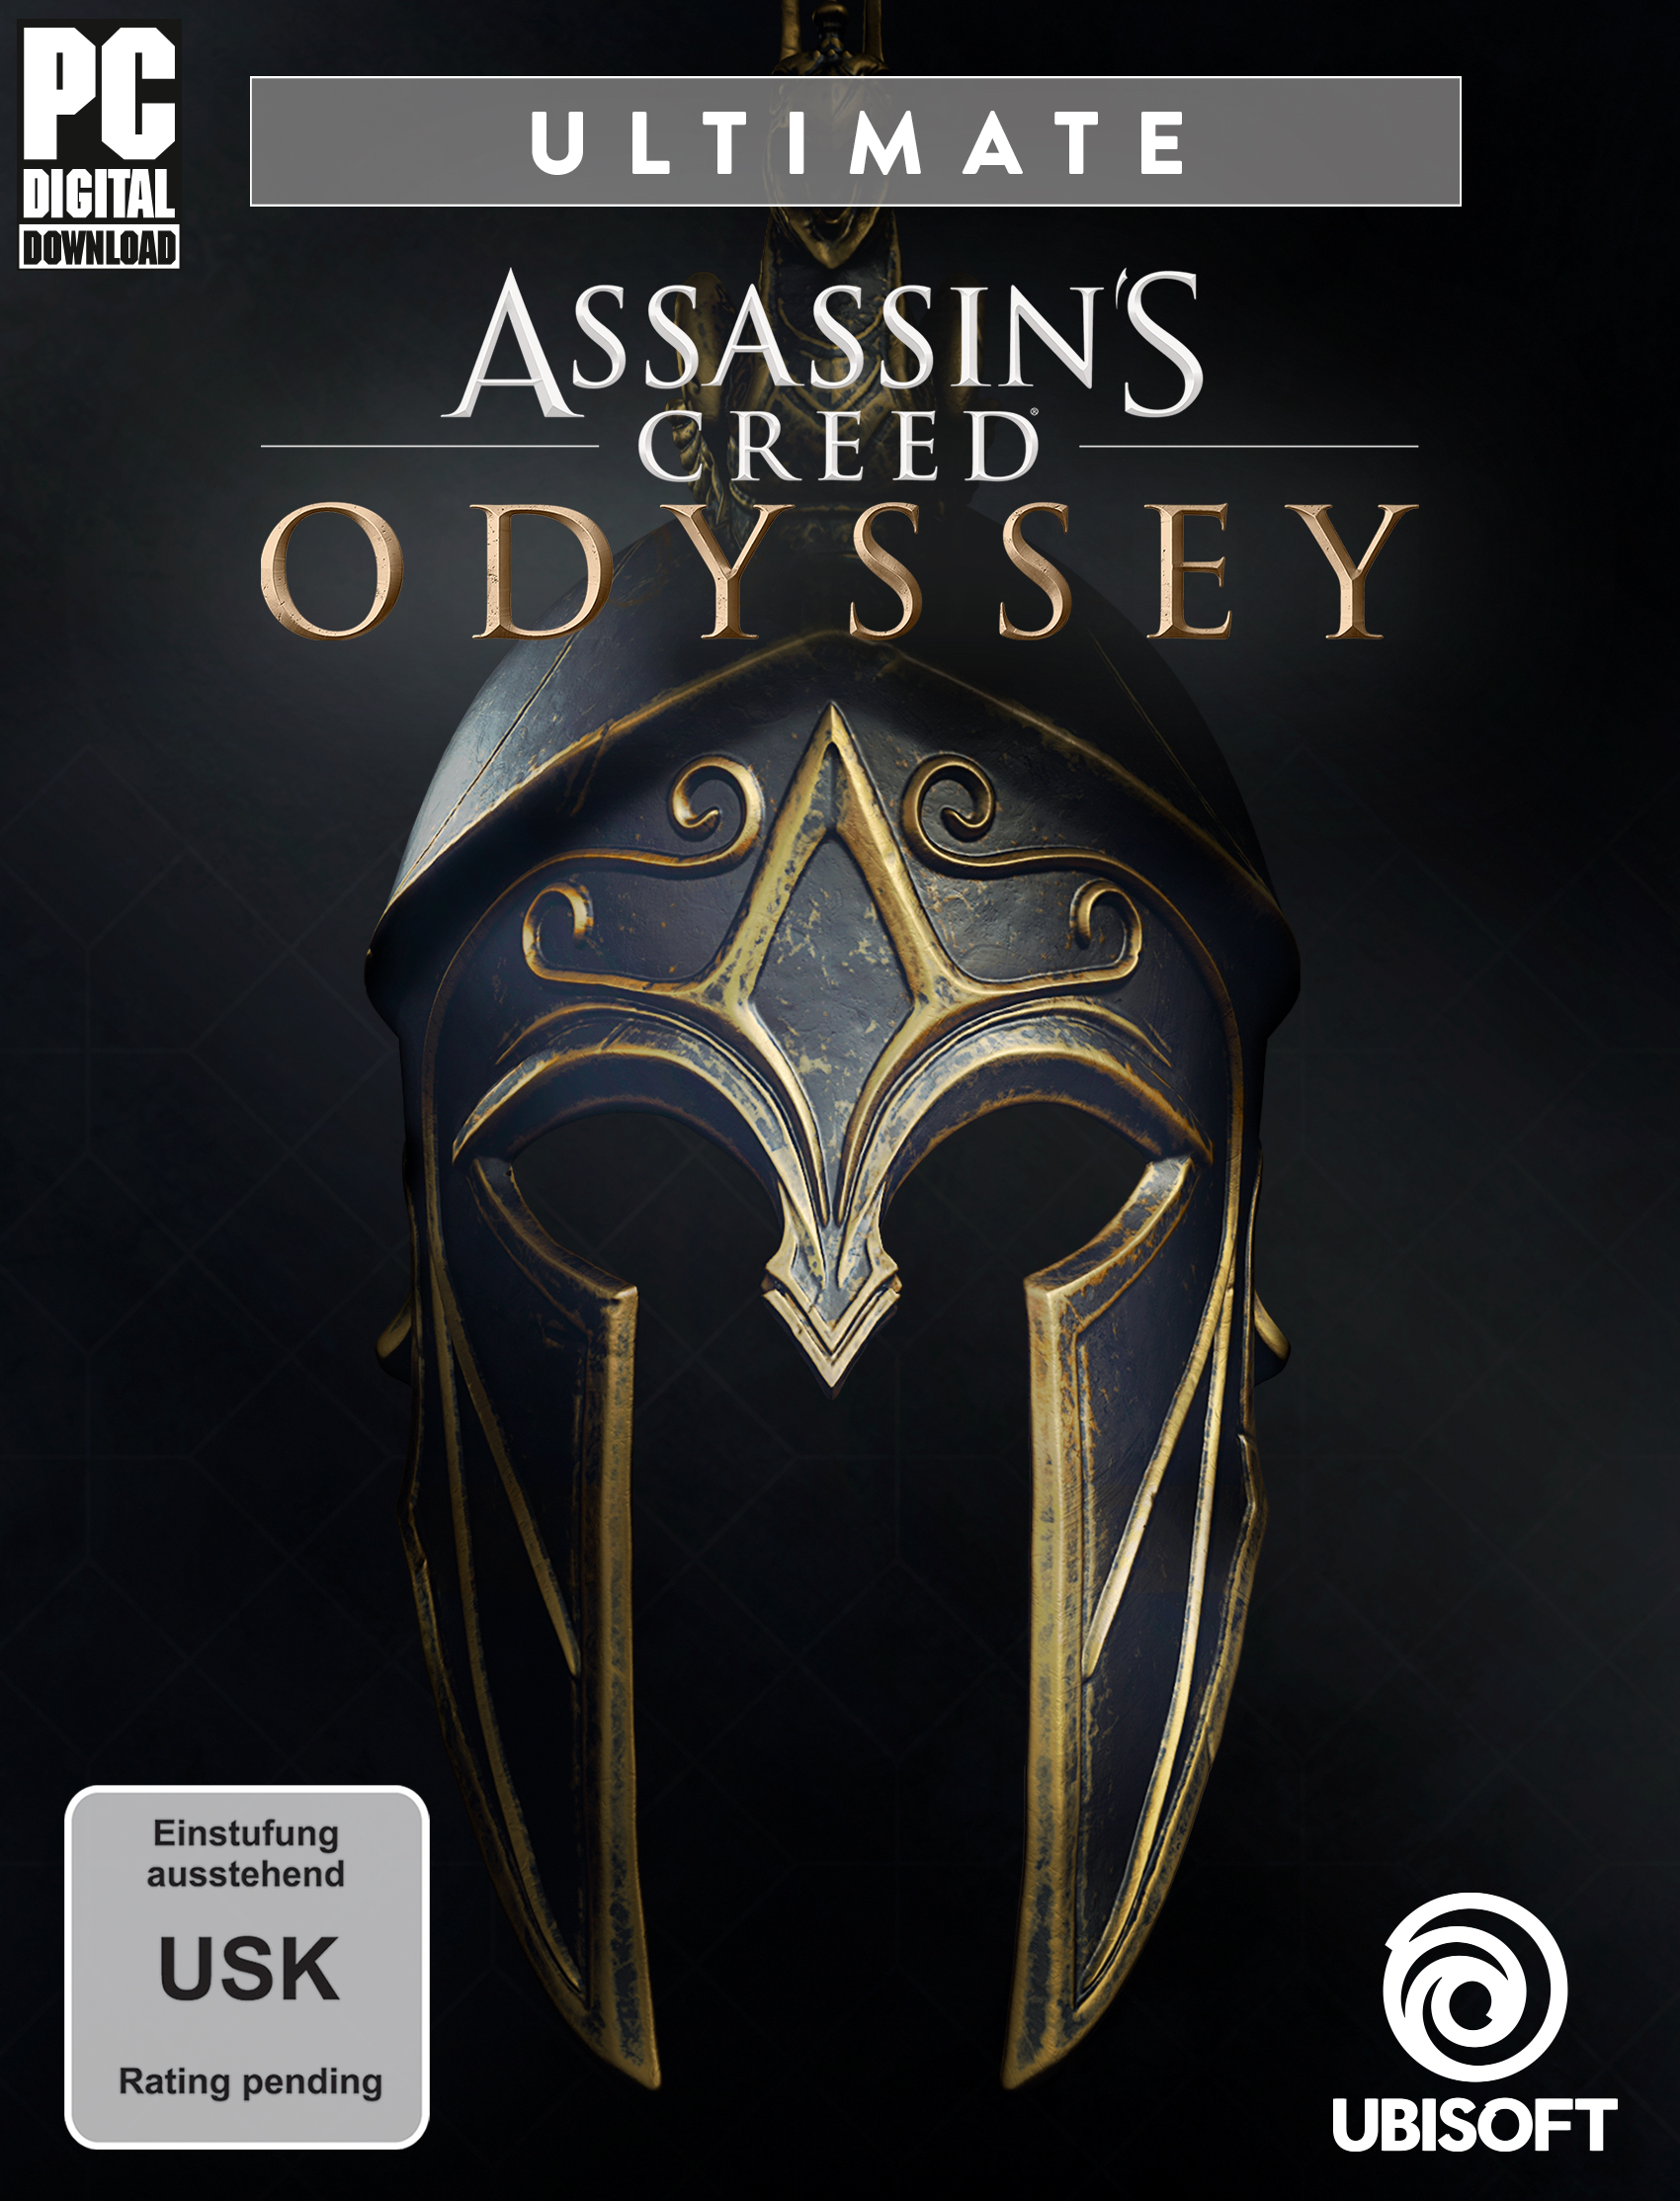 Assassin's Creed Odyssey - Ultimate Edition [PC Code - Uplay] Ultimate Pc